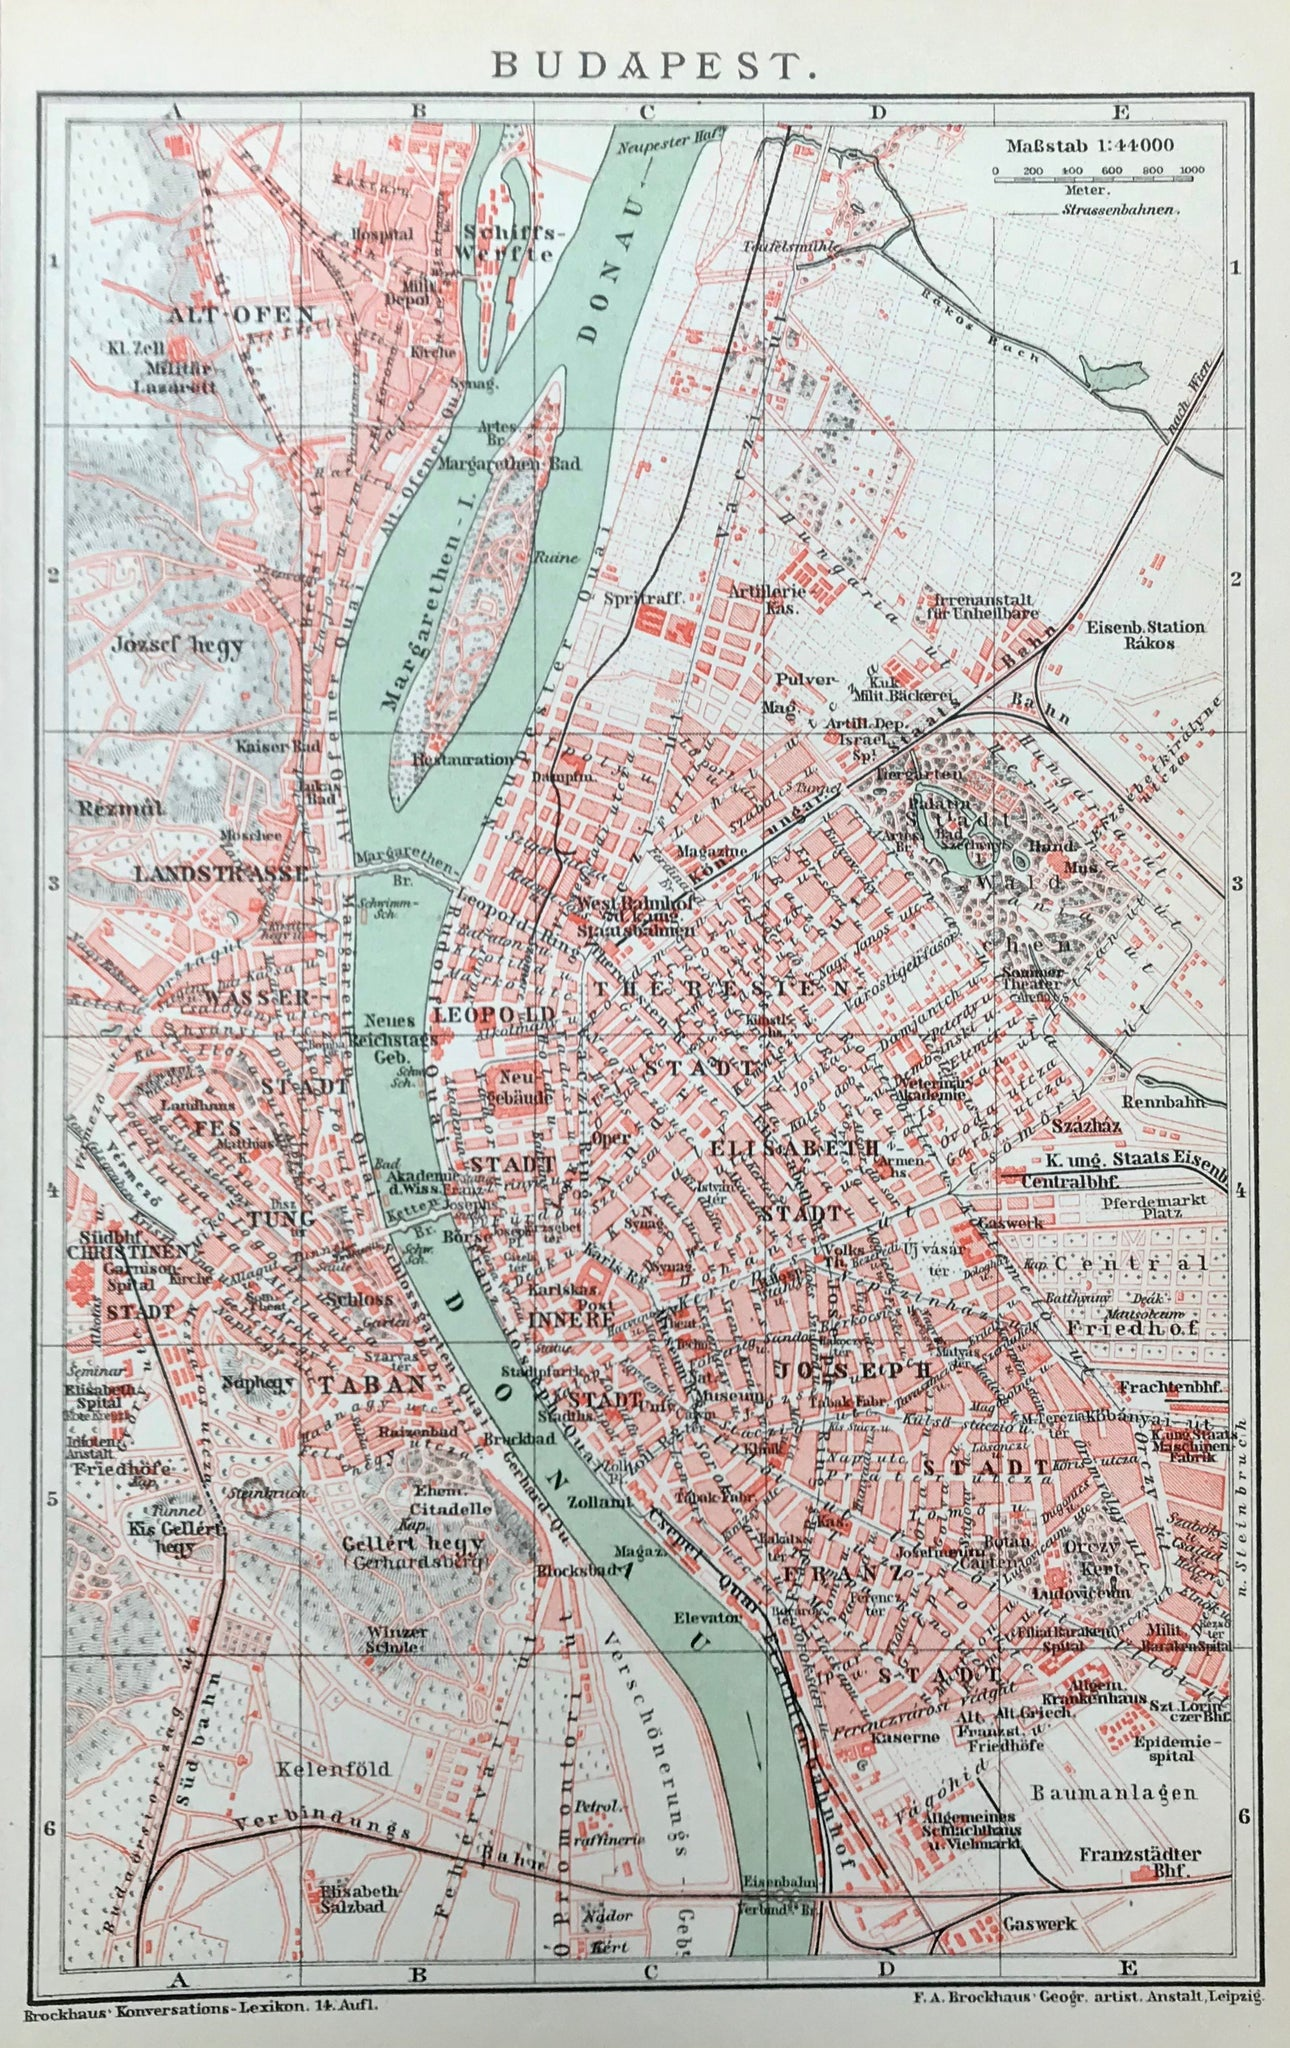 "Hungary, ""Budapest""  Engraving printed in color, 1894. On the reverse side is a street and monument key list shown on the map. Interest plan of Budapest showing the major institutions and monuments of the time"